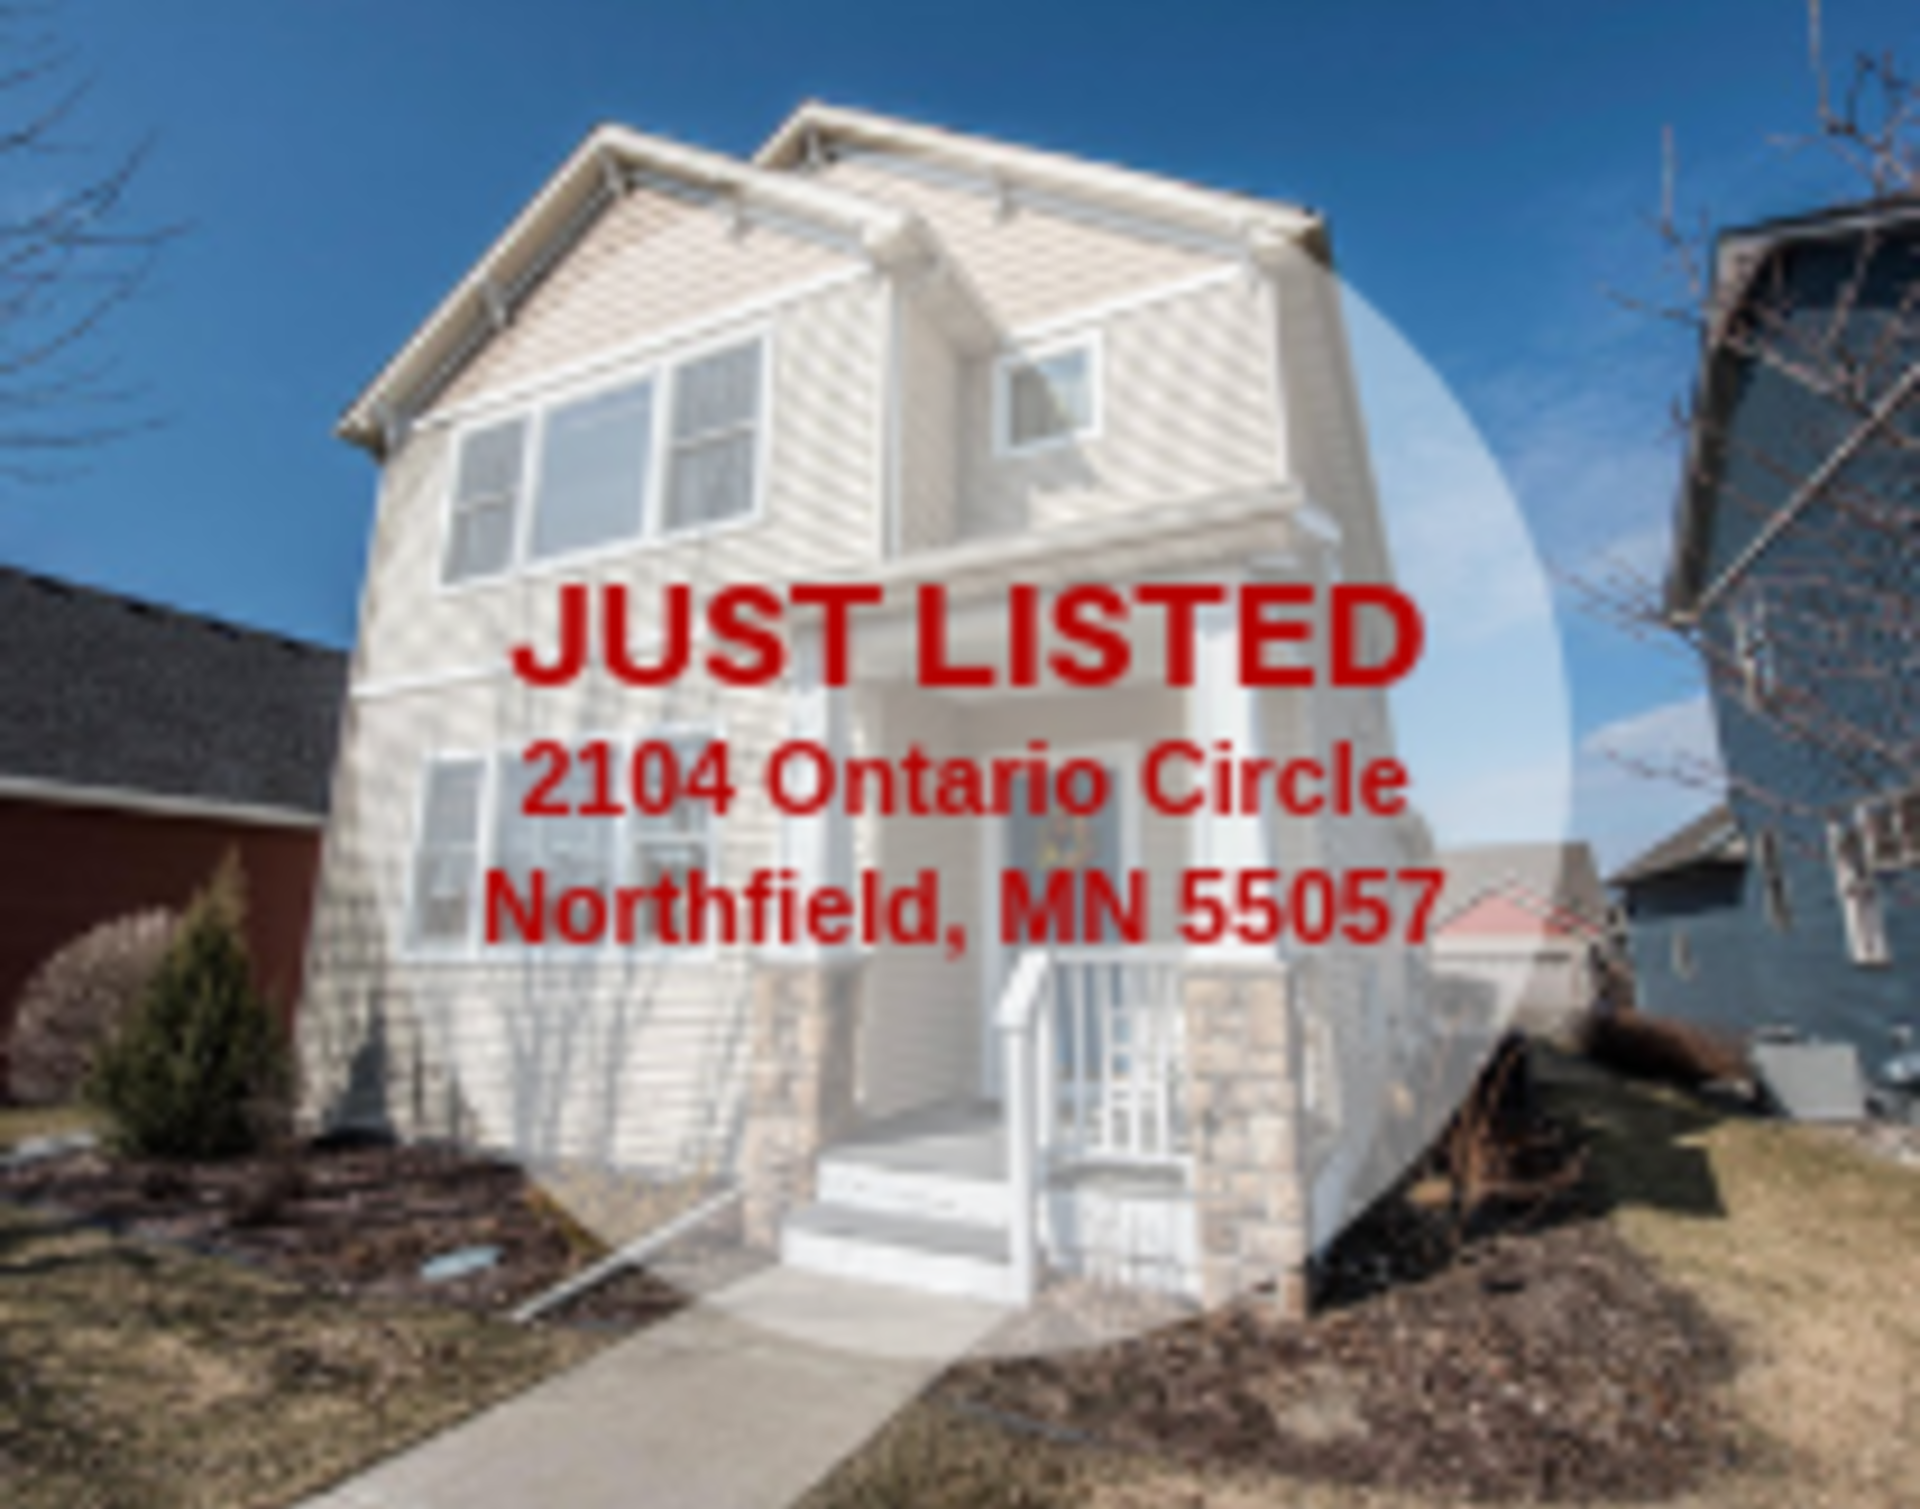 Detached Town-home in Northfield!